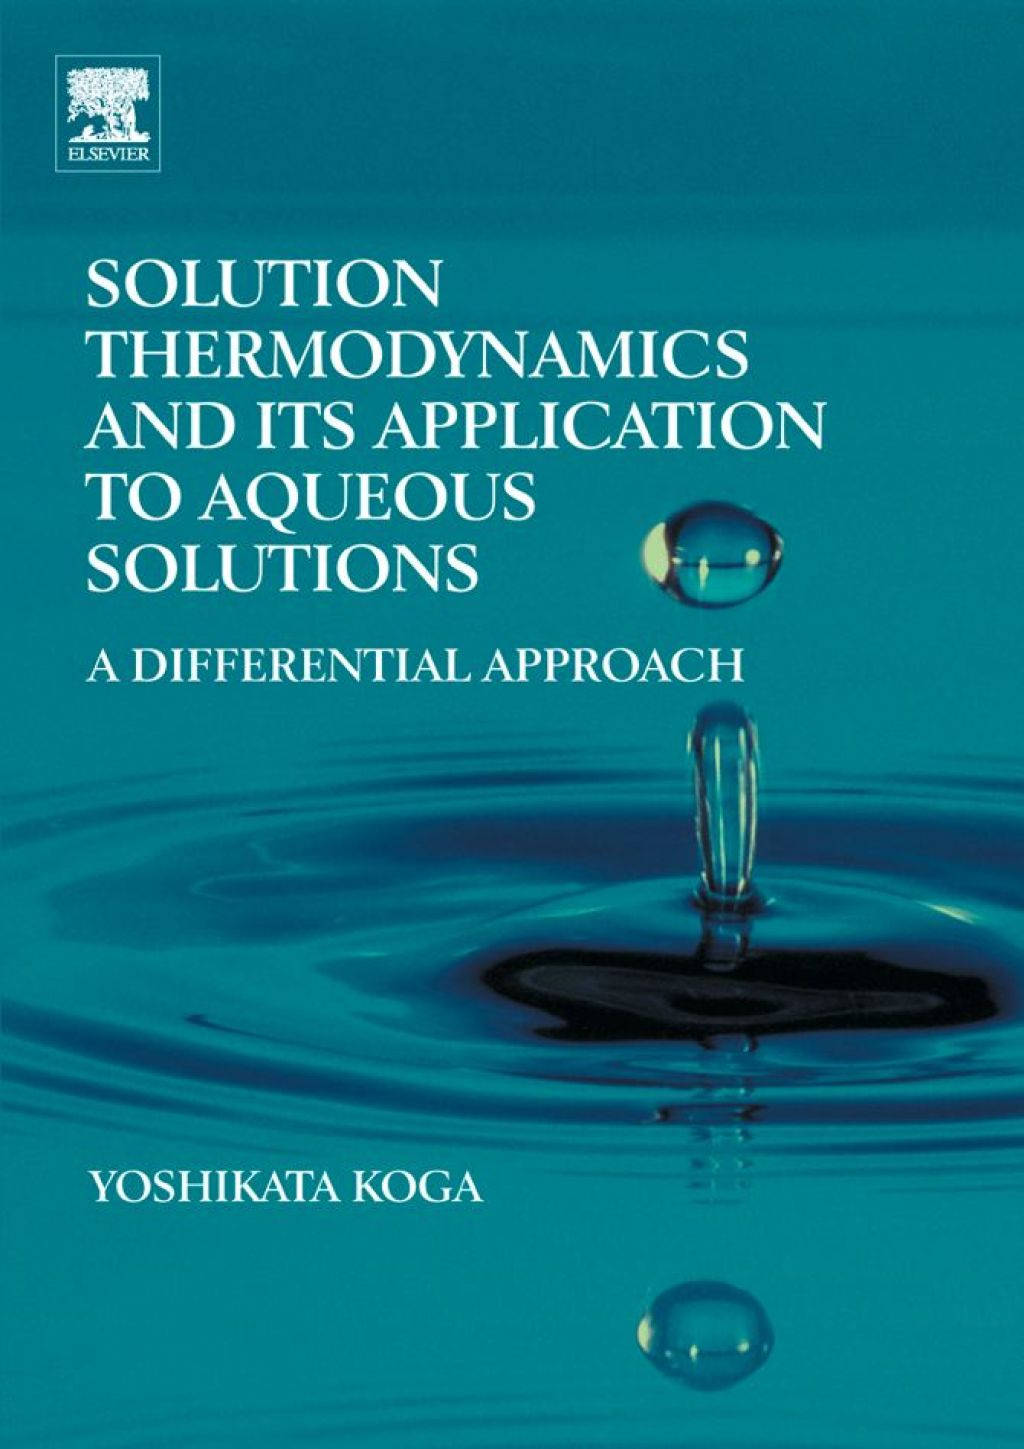 Solution Thermodynamics and its Application to Aqueous Solutions: A Differential Approach (eBook) - Koga;  Yoshikata,